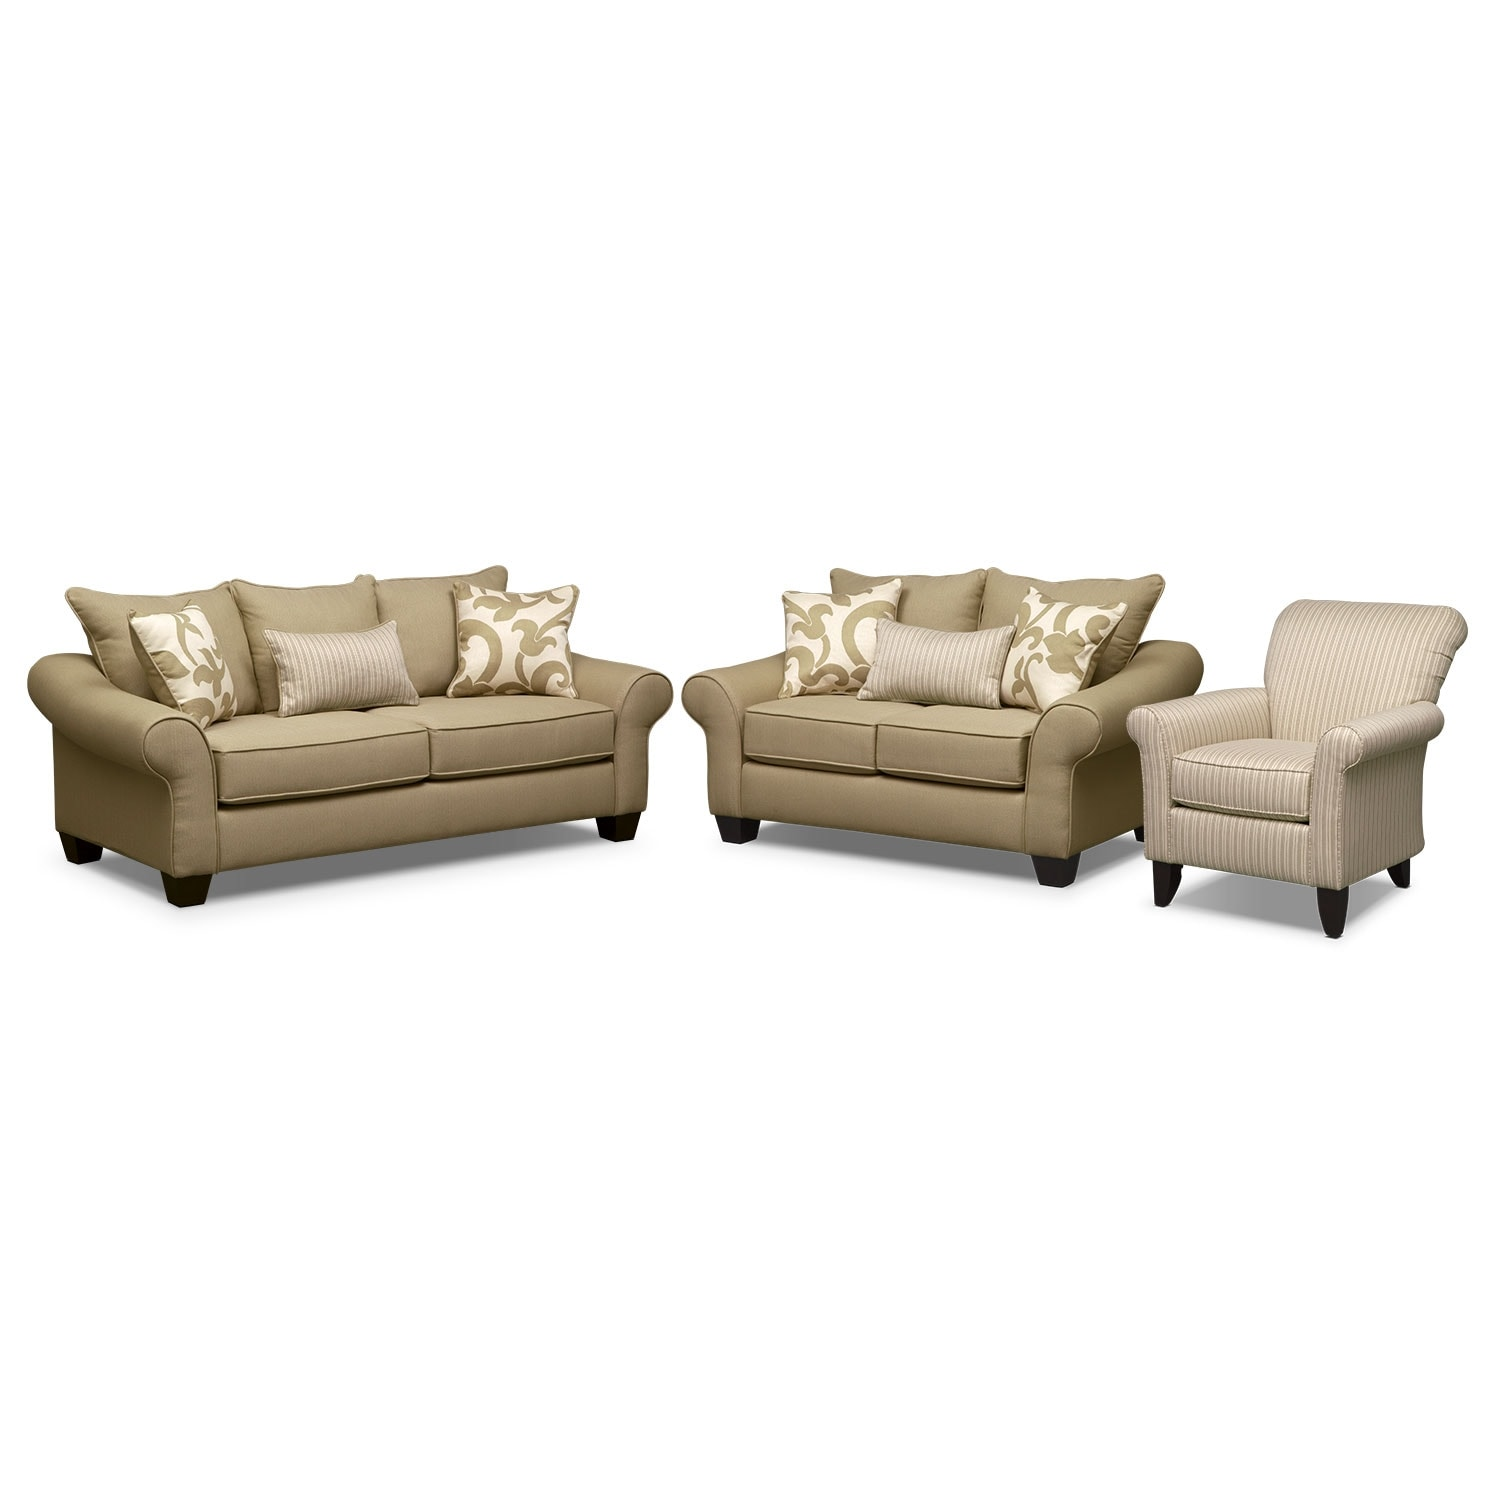 Living Room Furniture - Colette Full Memory Foam Sleeper Sofa, Loveseat and Accent Chair Set - Khaki